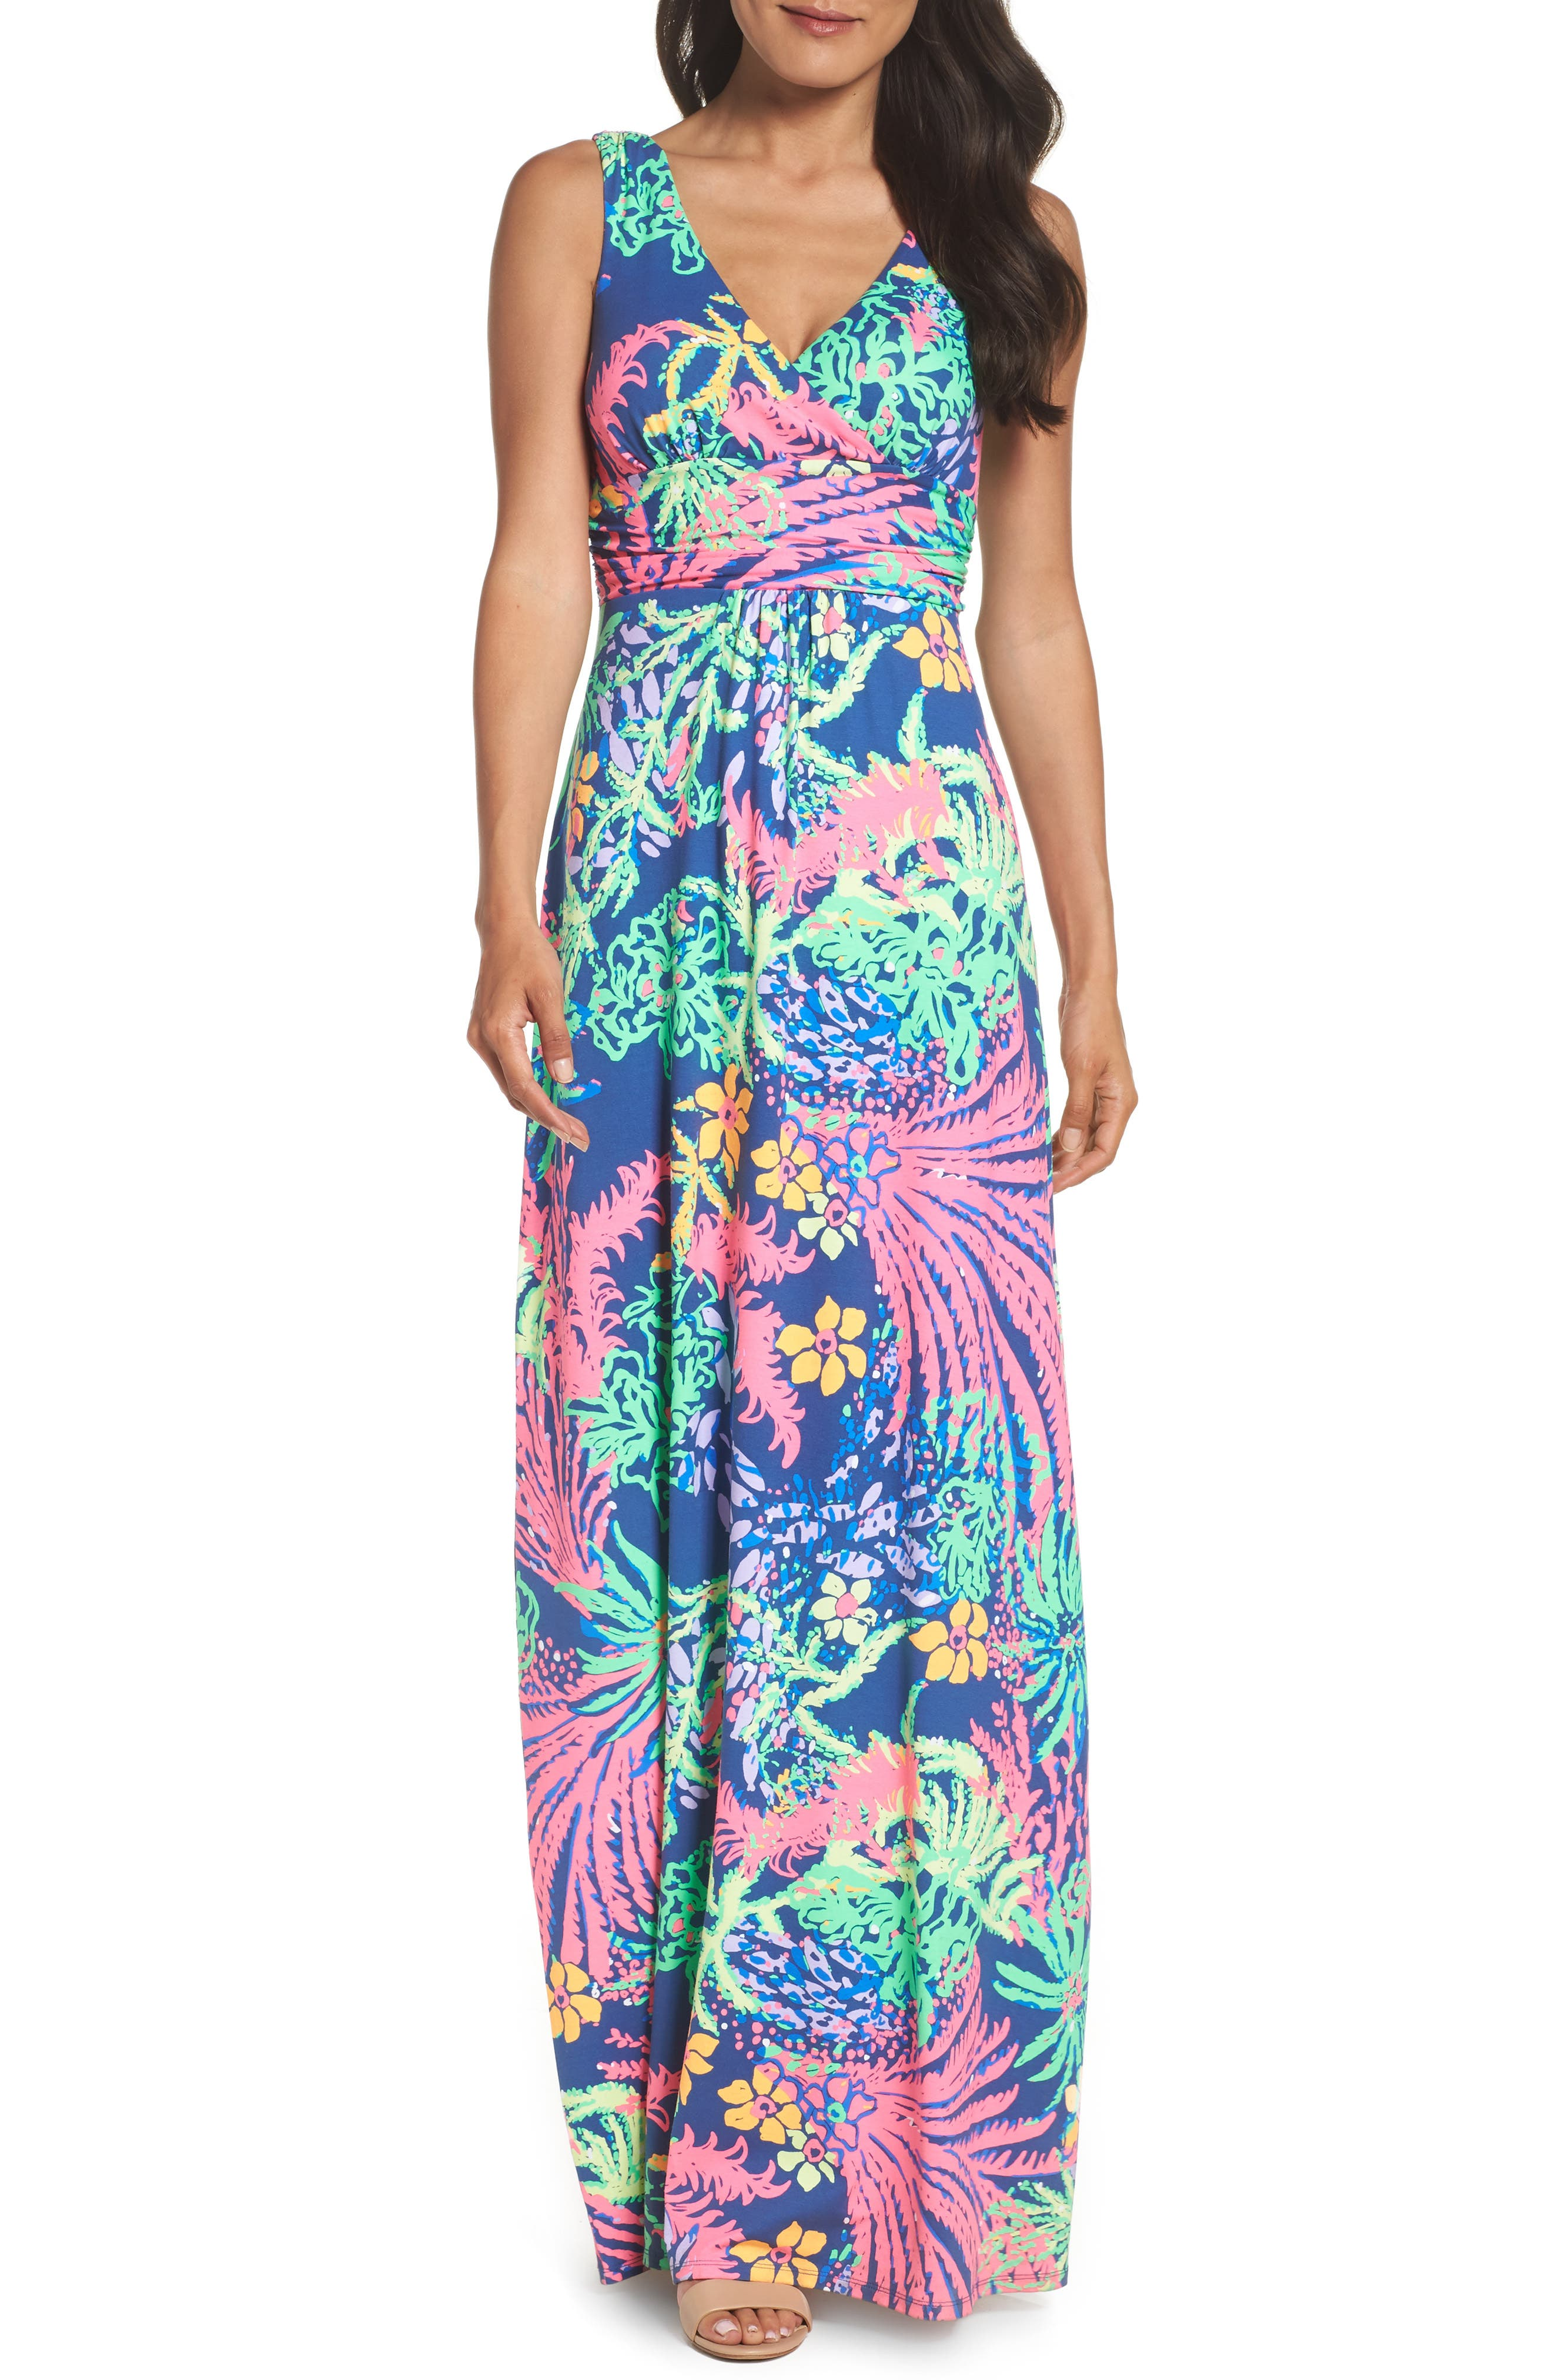 Lilly Pulitzer Sloane Maxi Dress Nordstrom